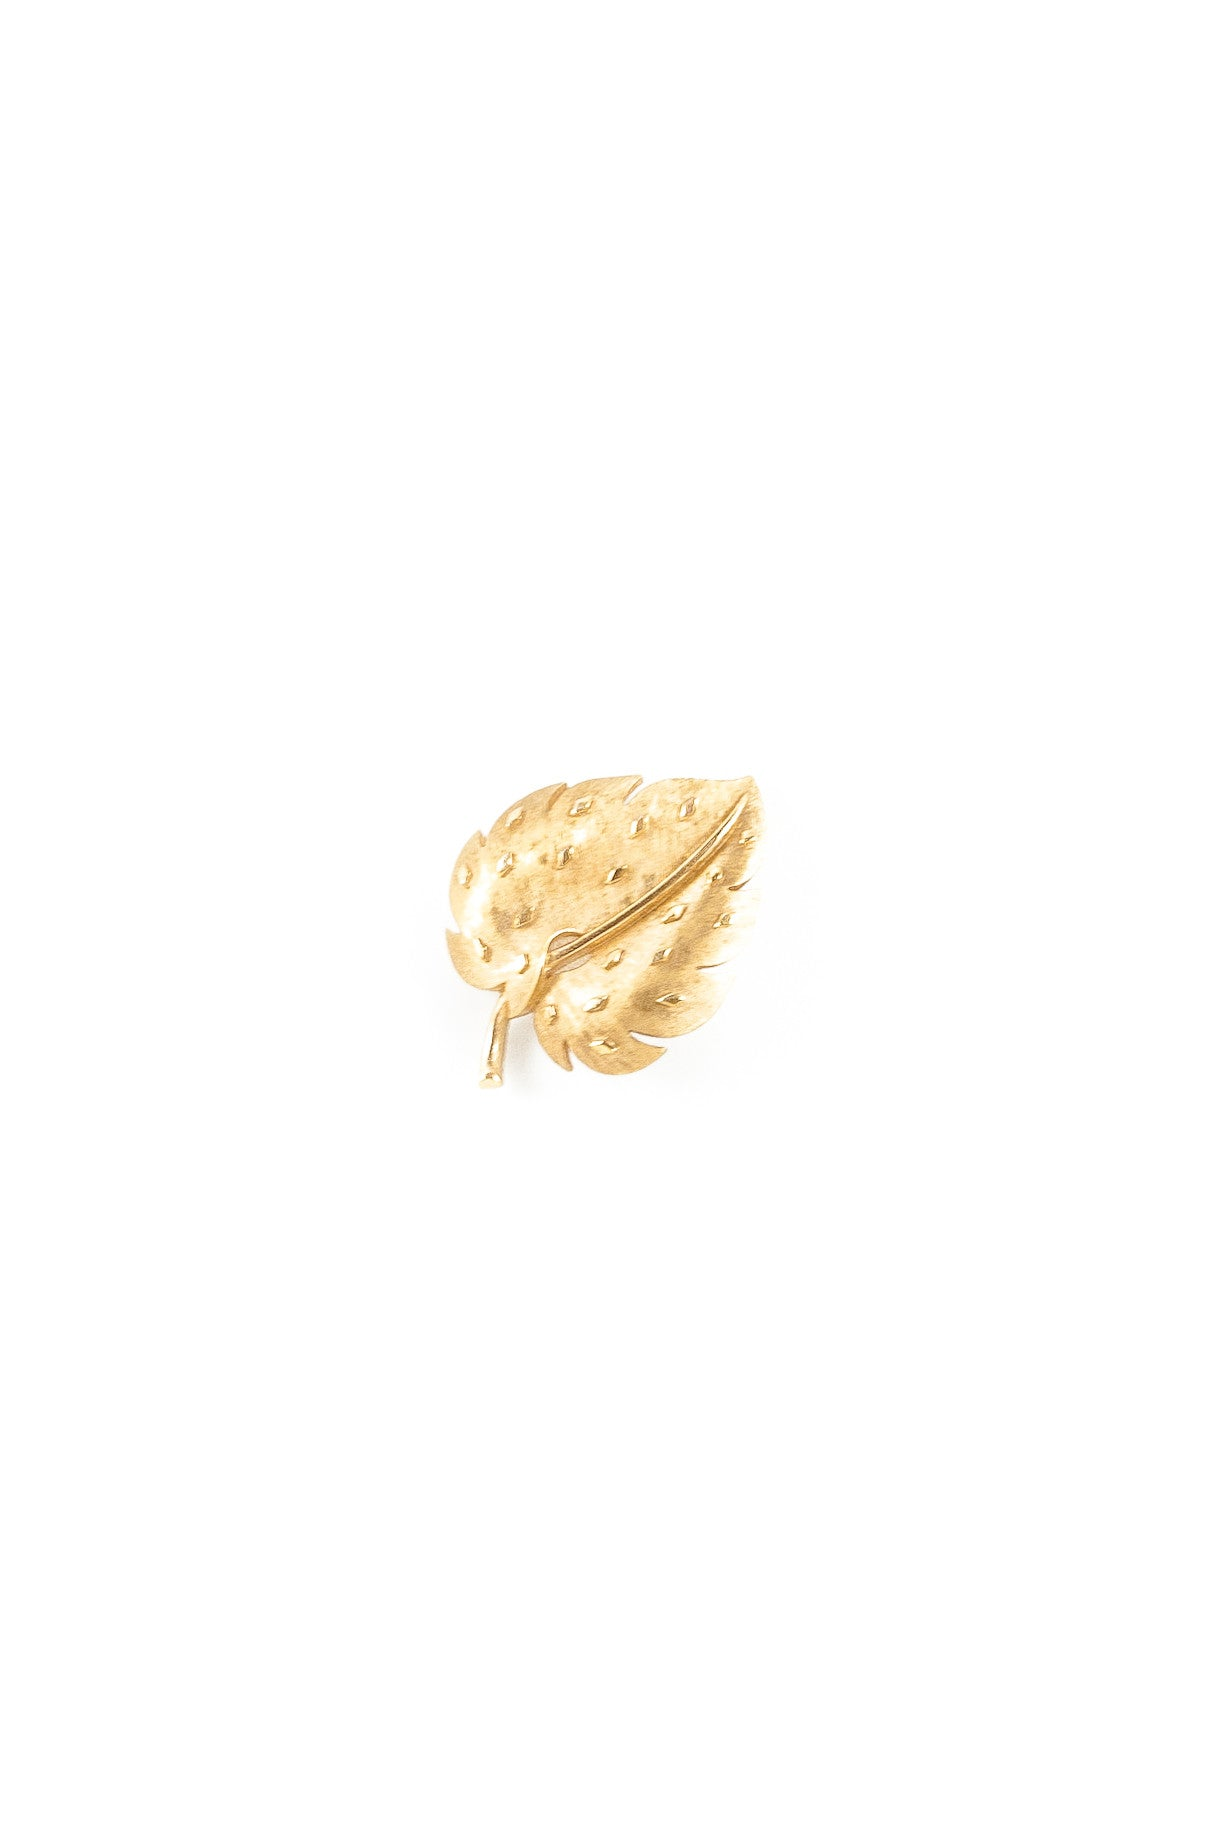 70's__Trifari__Mini Leaf Brooch